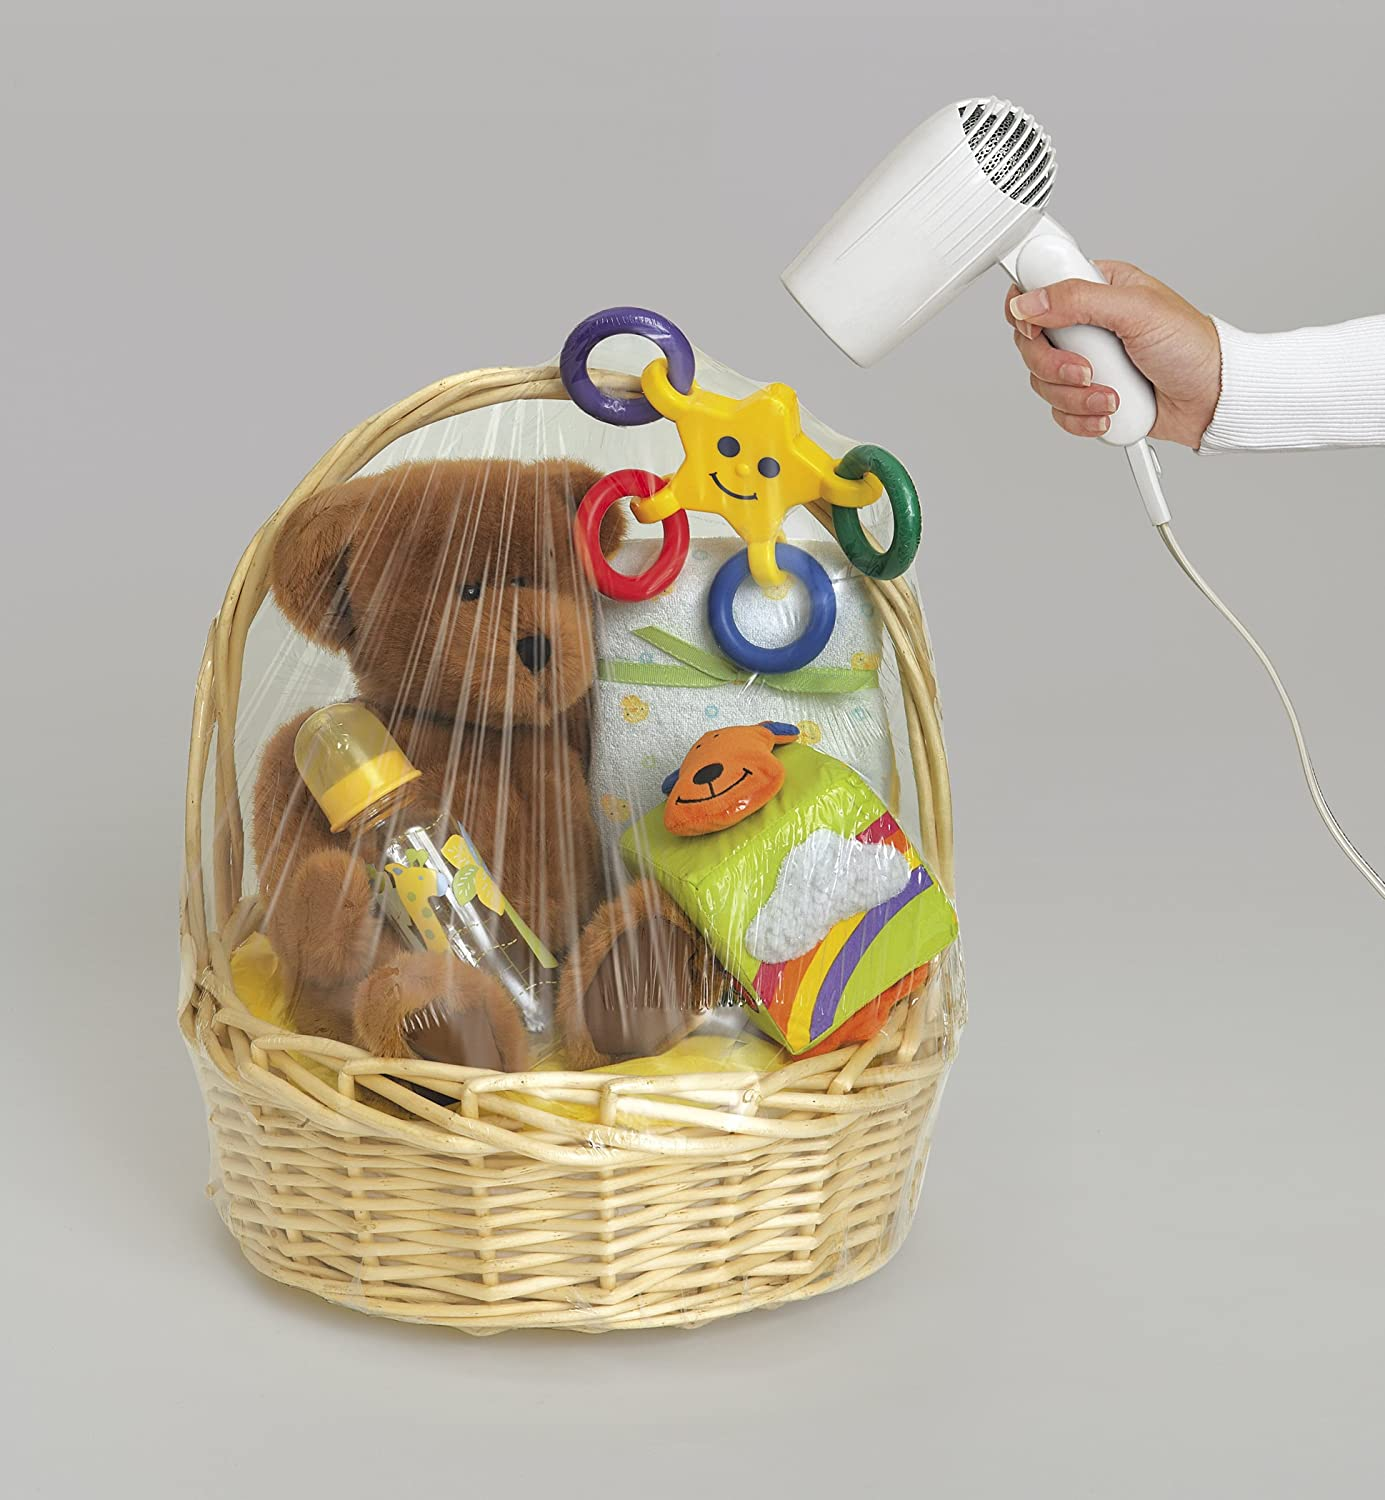 where to buy plastic wrap for gift baskets